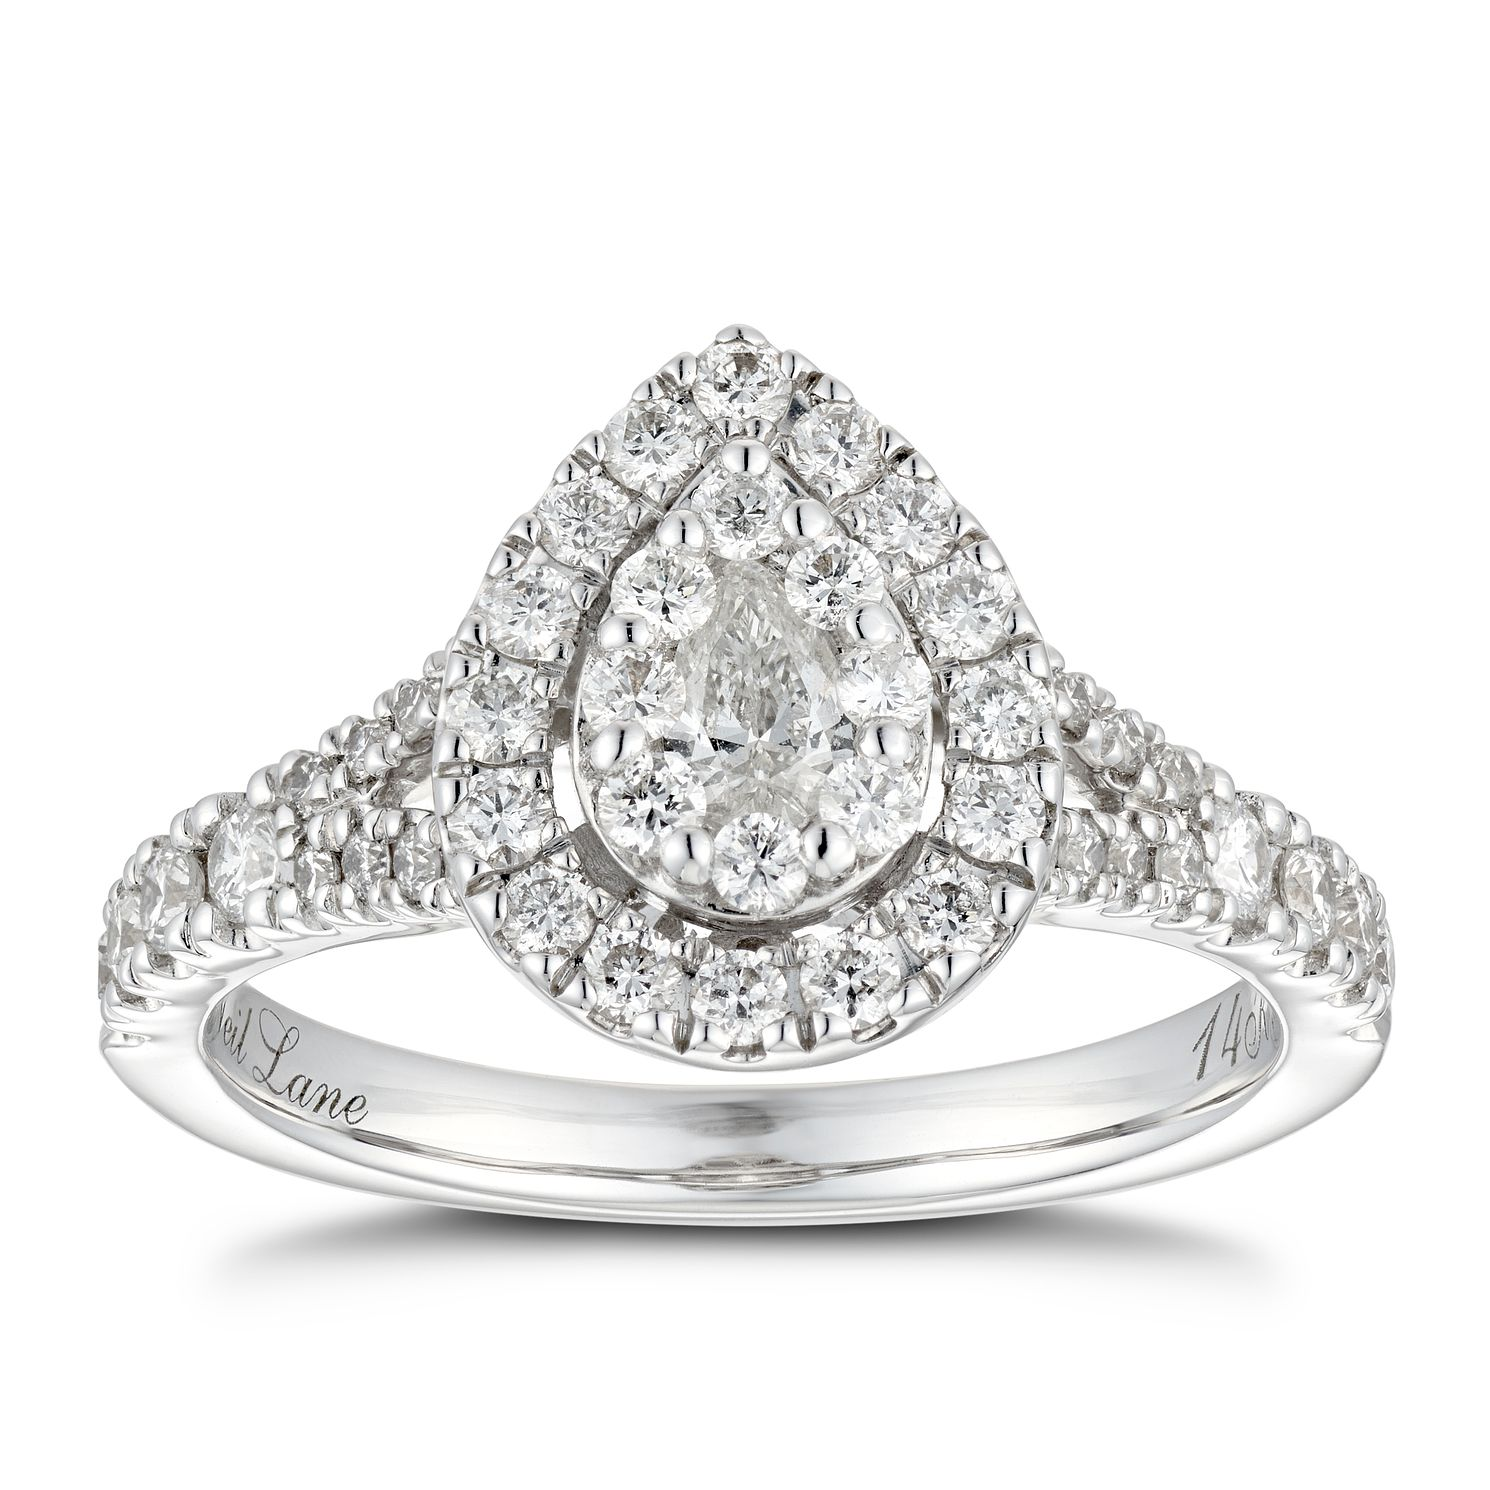 Neil Lane 14ct White Gold 0.81ct Diamond Pear Diamond Ring - Product number 4807235